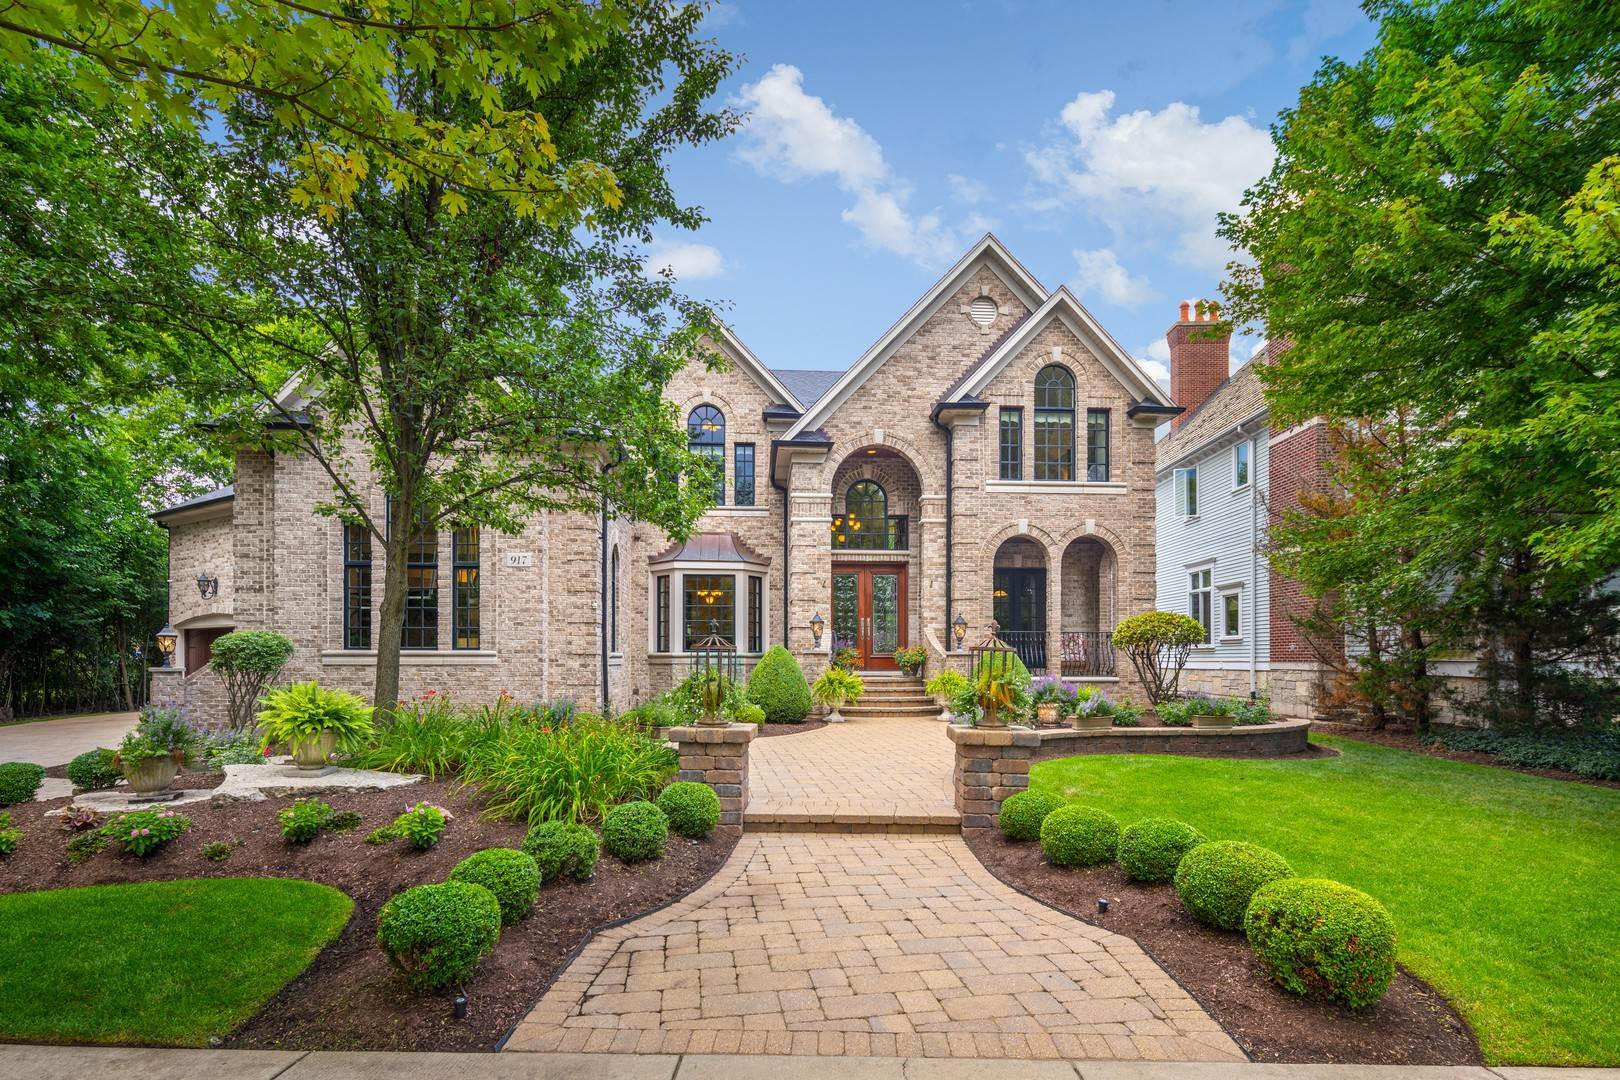 Single Family Homes for Sale at 917 Jackson Avenue Naperville, Illinois 60540 United States